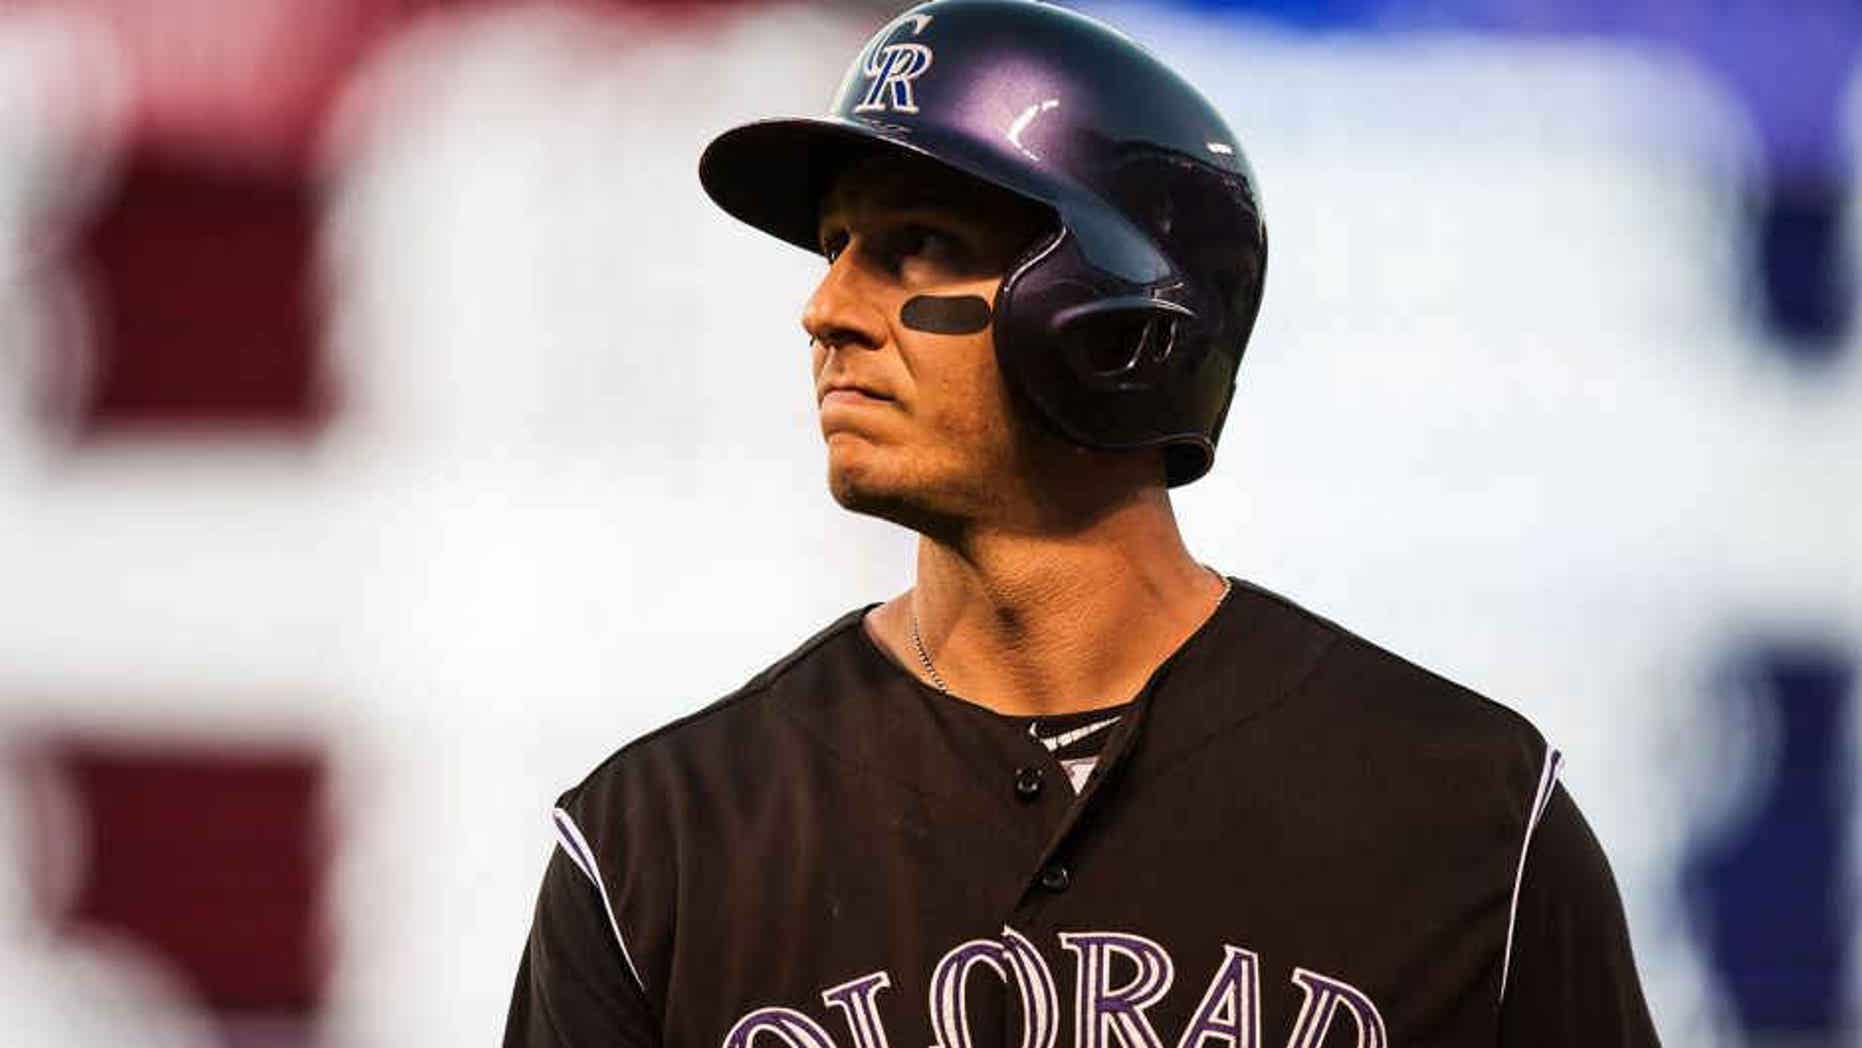 DENVER, CO - JULY 25: Troy Tulowitzki #2 of the Colorado Rockies reacts after flying out in the seventh inning of a game against the Cincinnati Reds at Coors Field on July 25, 2015 in Denver, Colorado. (Photo by Dustin Bradford/Getty Images)